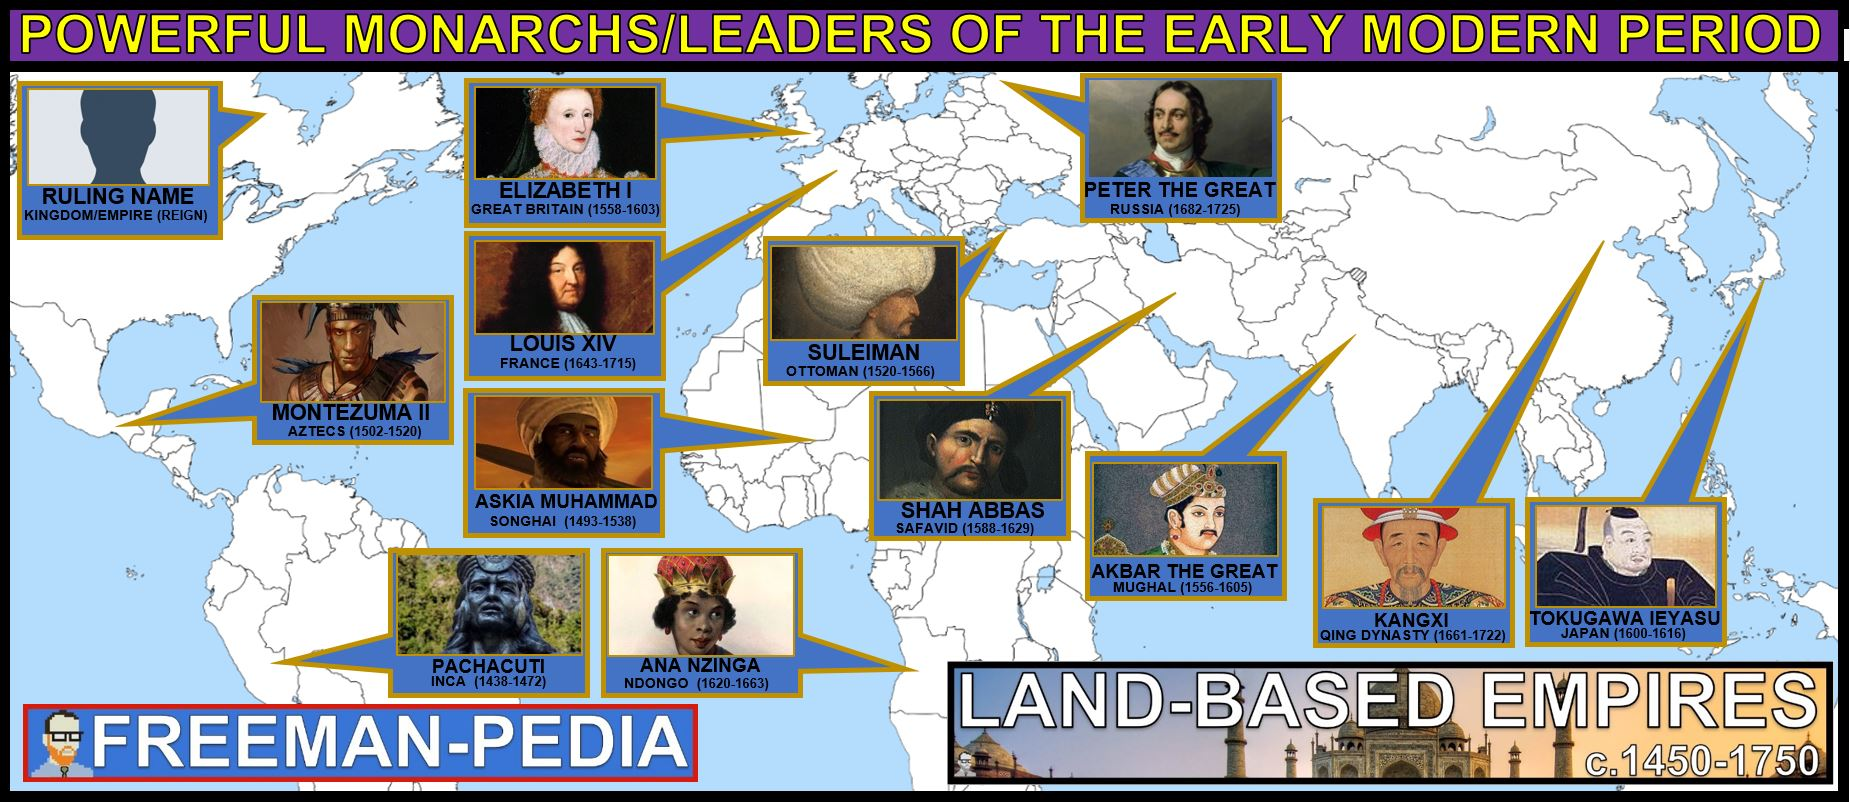 POWERFUL MONARCHS OF THE EARLY MODERN PERIOD AP WORLD HISTORY FREEMANPEDIA.JPG